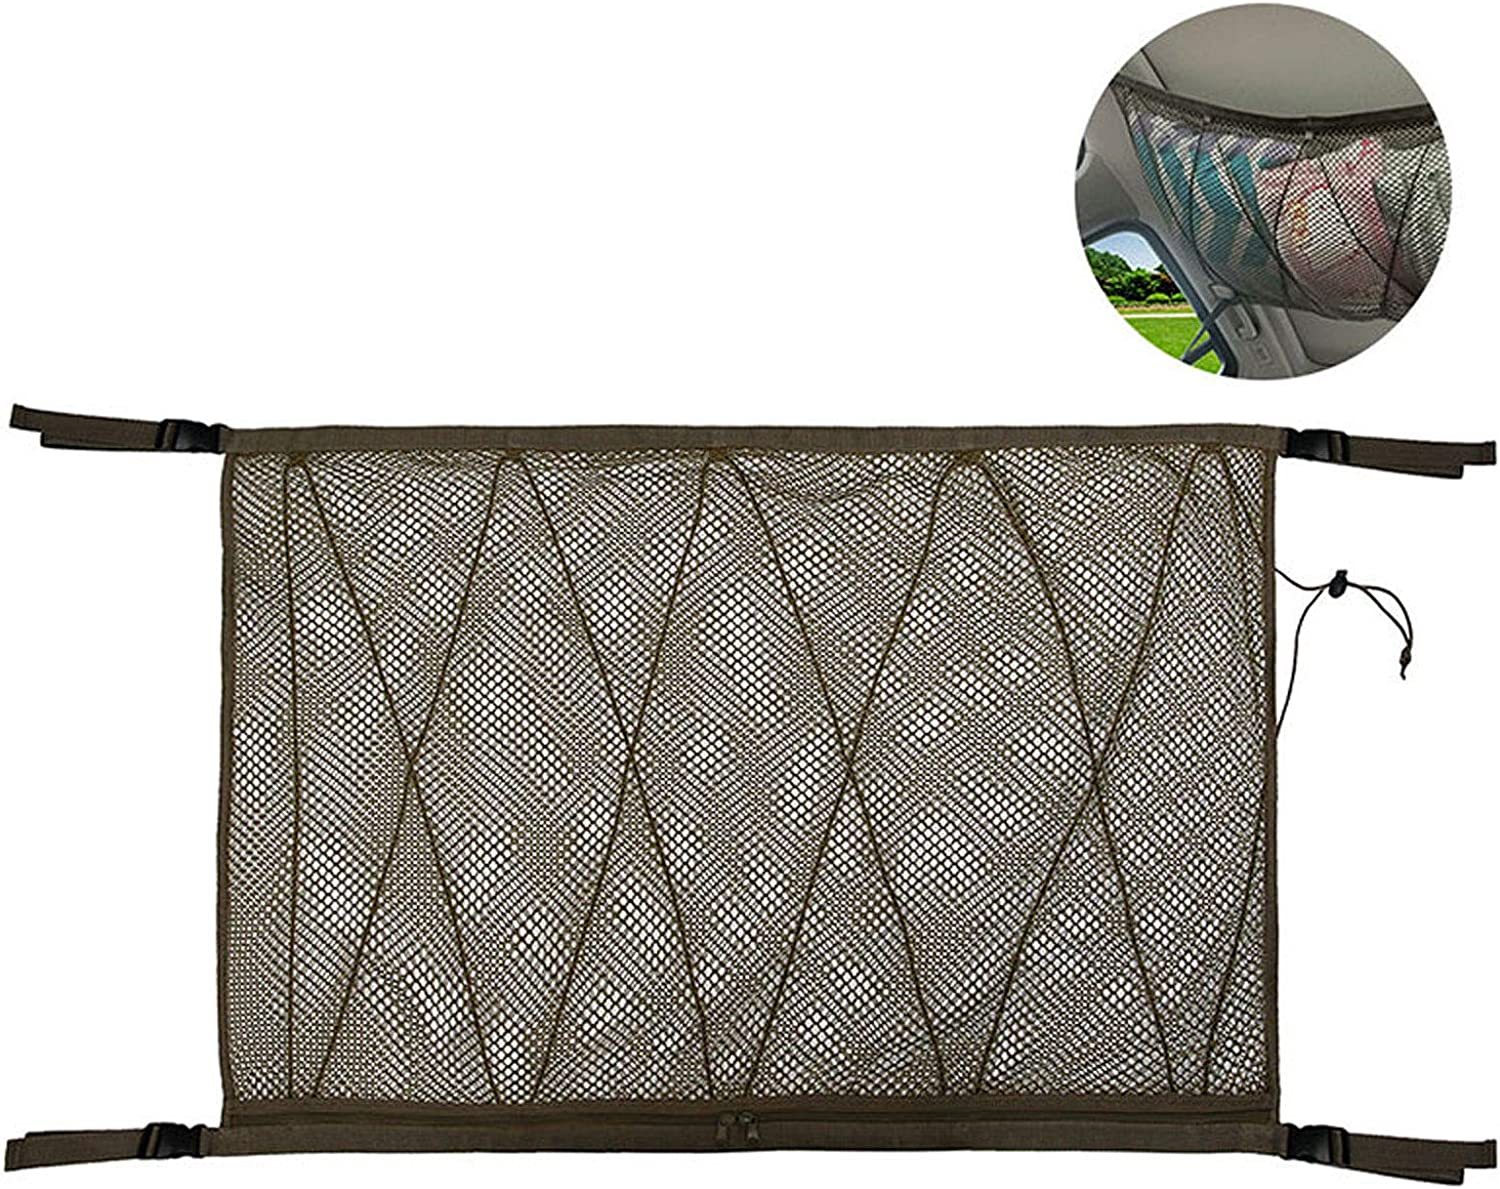 Haiabei Car Outlet sale feature Now on sale Ceiling Storage Pocket Interior Net